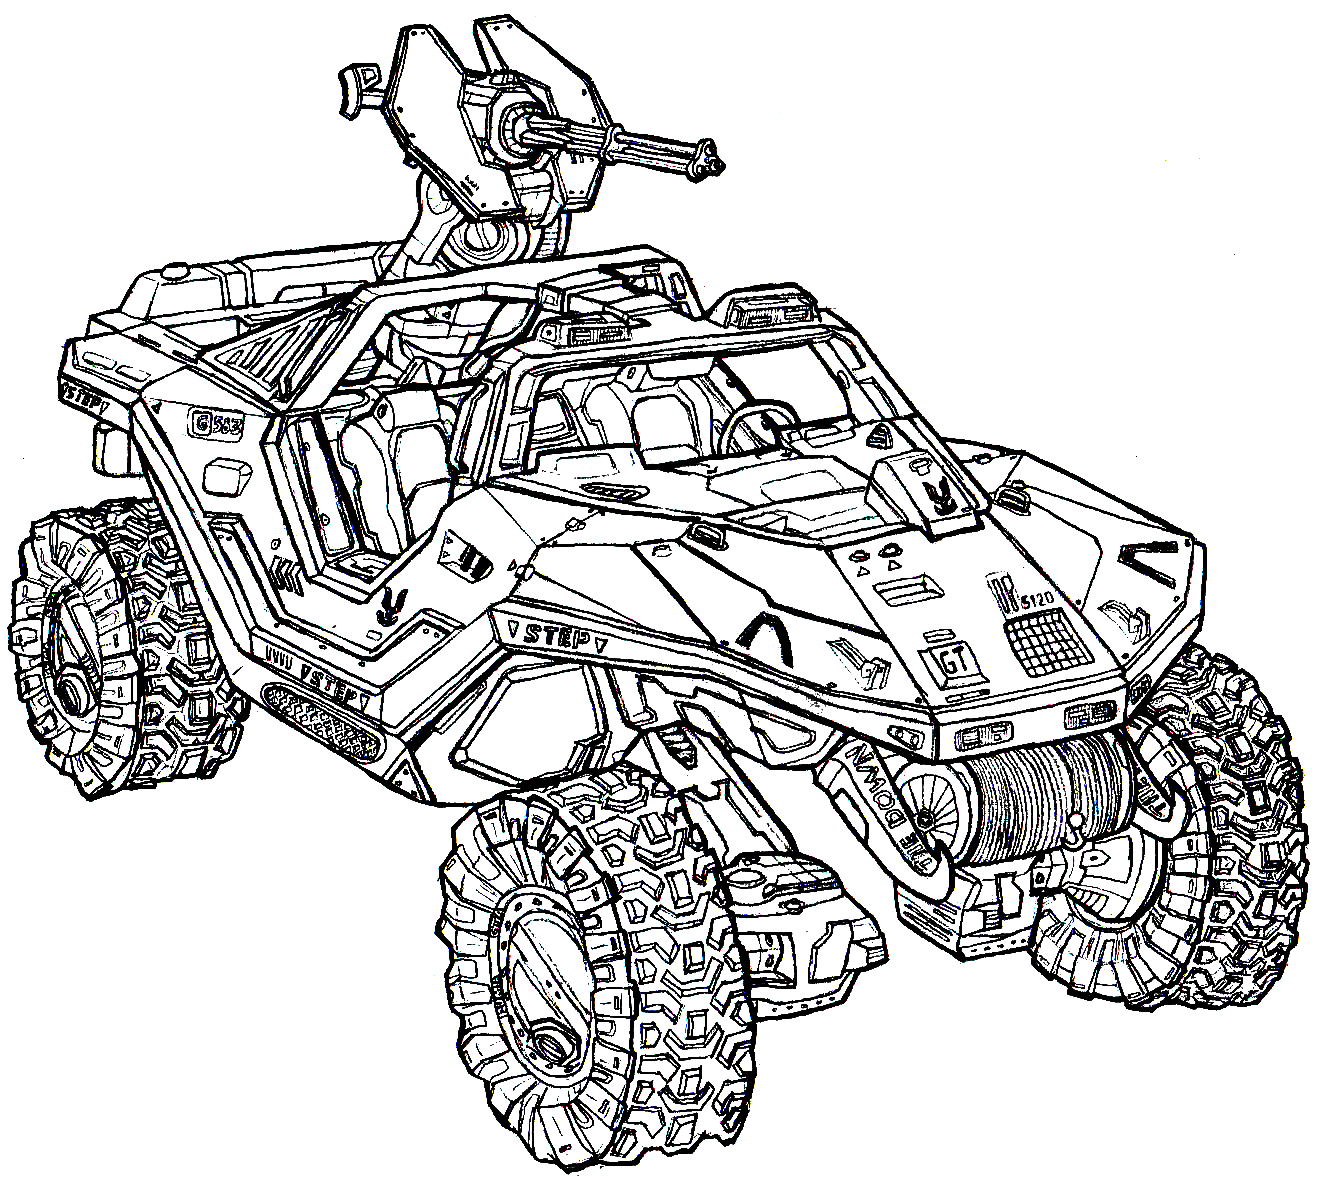 halo tank coloring pages - photo#6